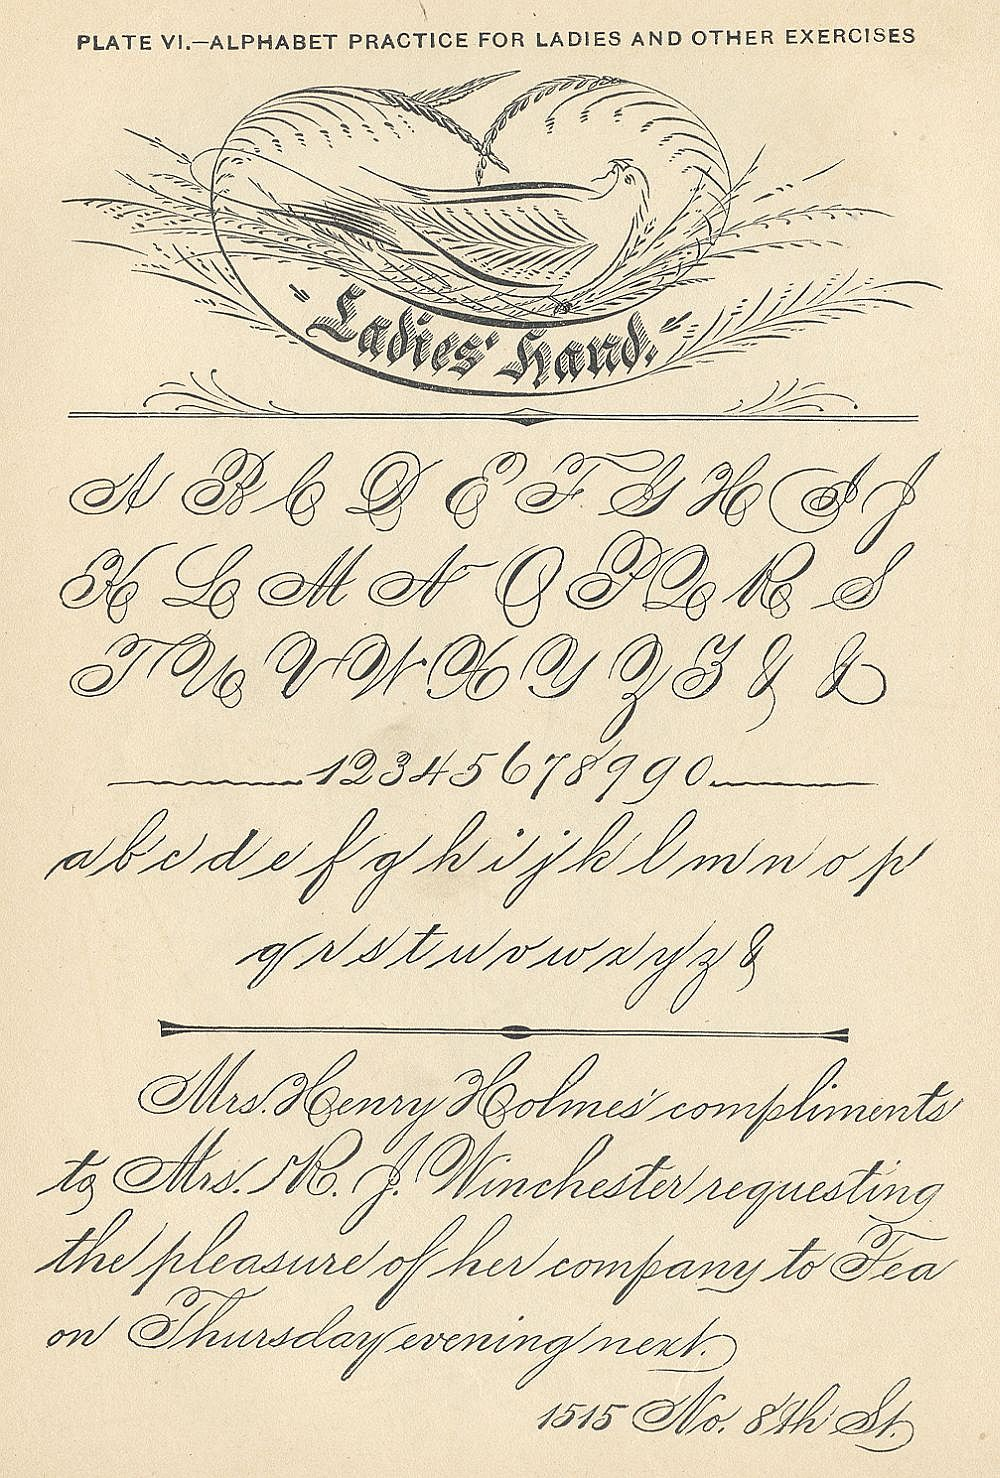 http://www.ameshistory.org/sites/default/files/dictionary_penmanship6.jpg